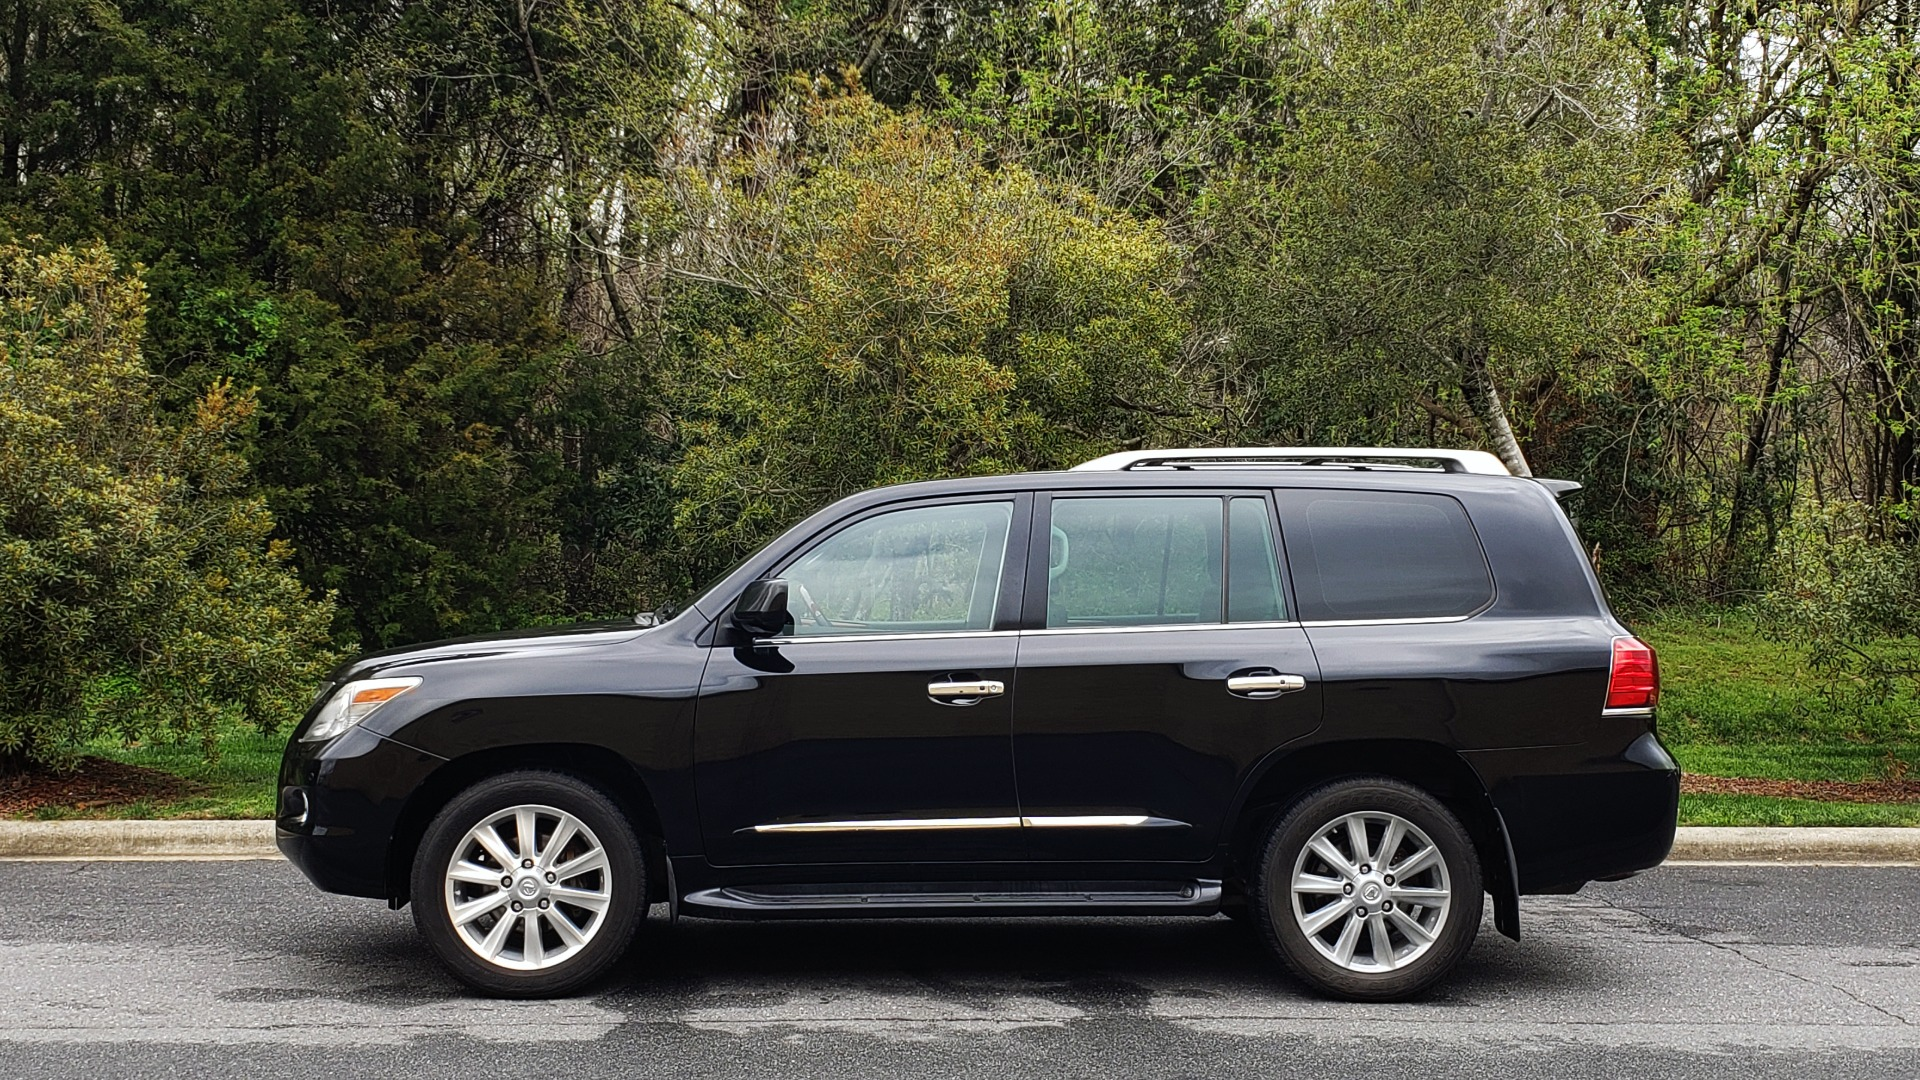 Used 2008 Lexus LX 570 4WD / TECH PKG / NAV / SUNROOF / MARK LEVINSON / PARK ASST for sale $22,995 at Formula Imports in Charlotte NC 28227 2